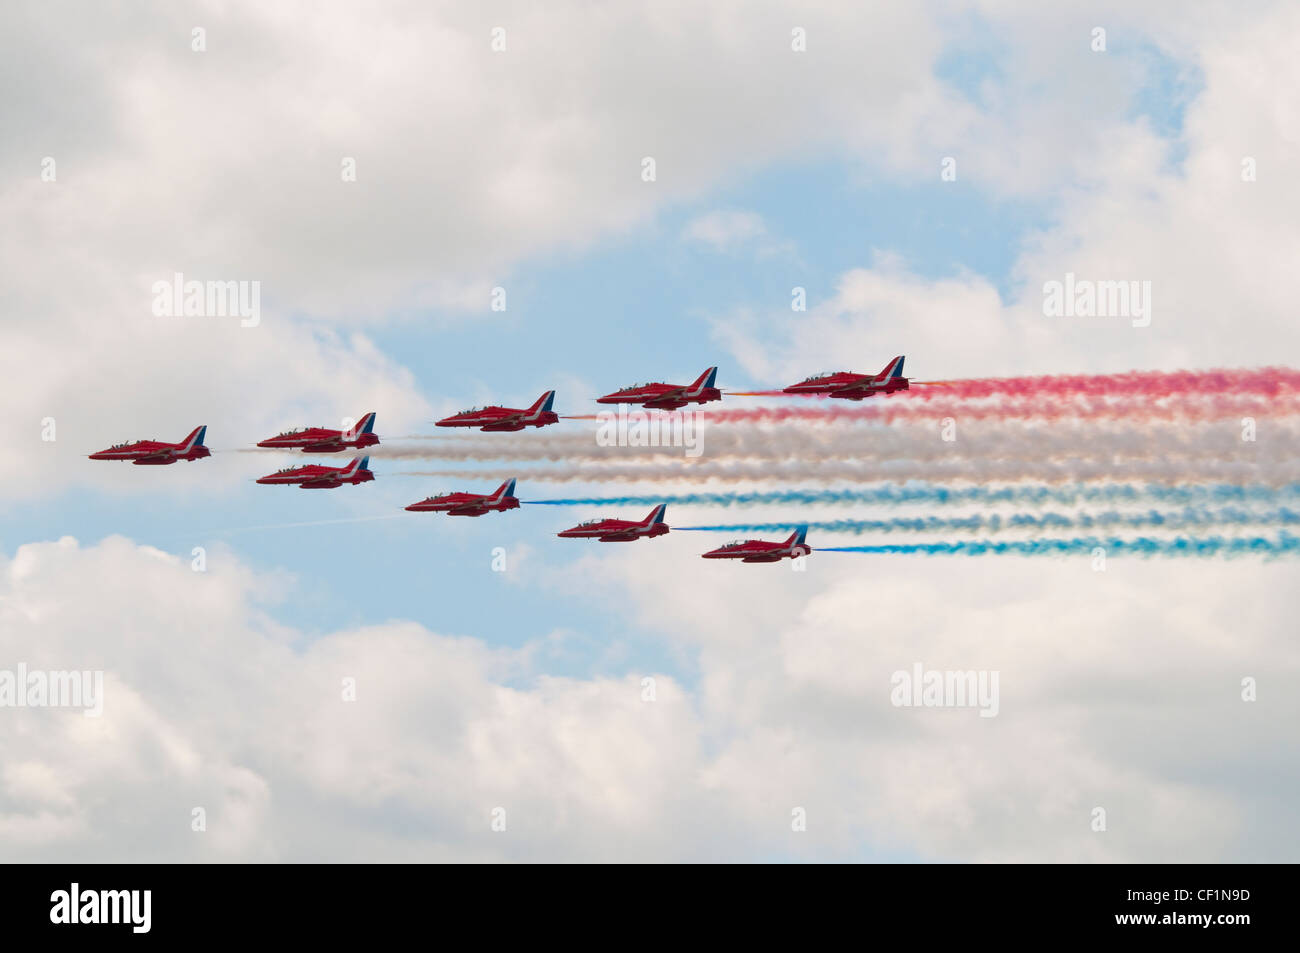 The Red Arrows aerobatic display team in formation during a level flypast. - Stock Image